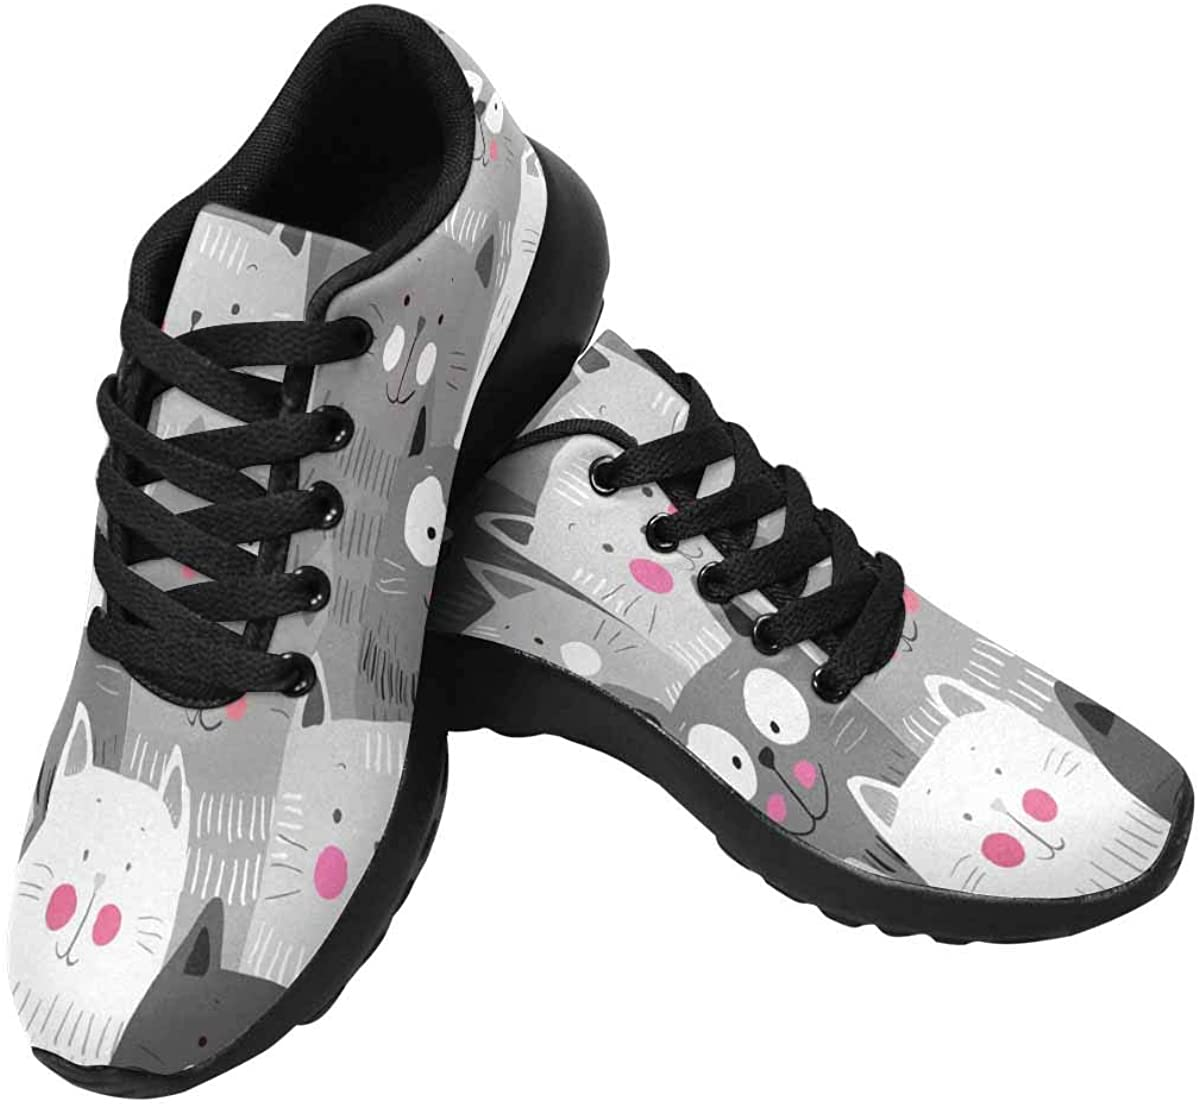 InterestPrint Women's Running Shoes - Casual Breathable Athletic Tennis Sneakers Cute Cats Colorful Pattern